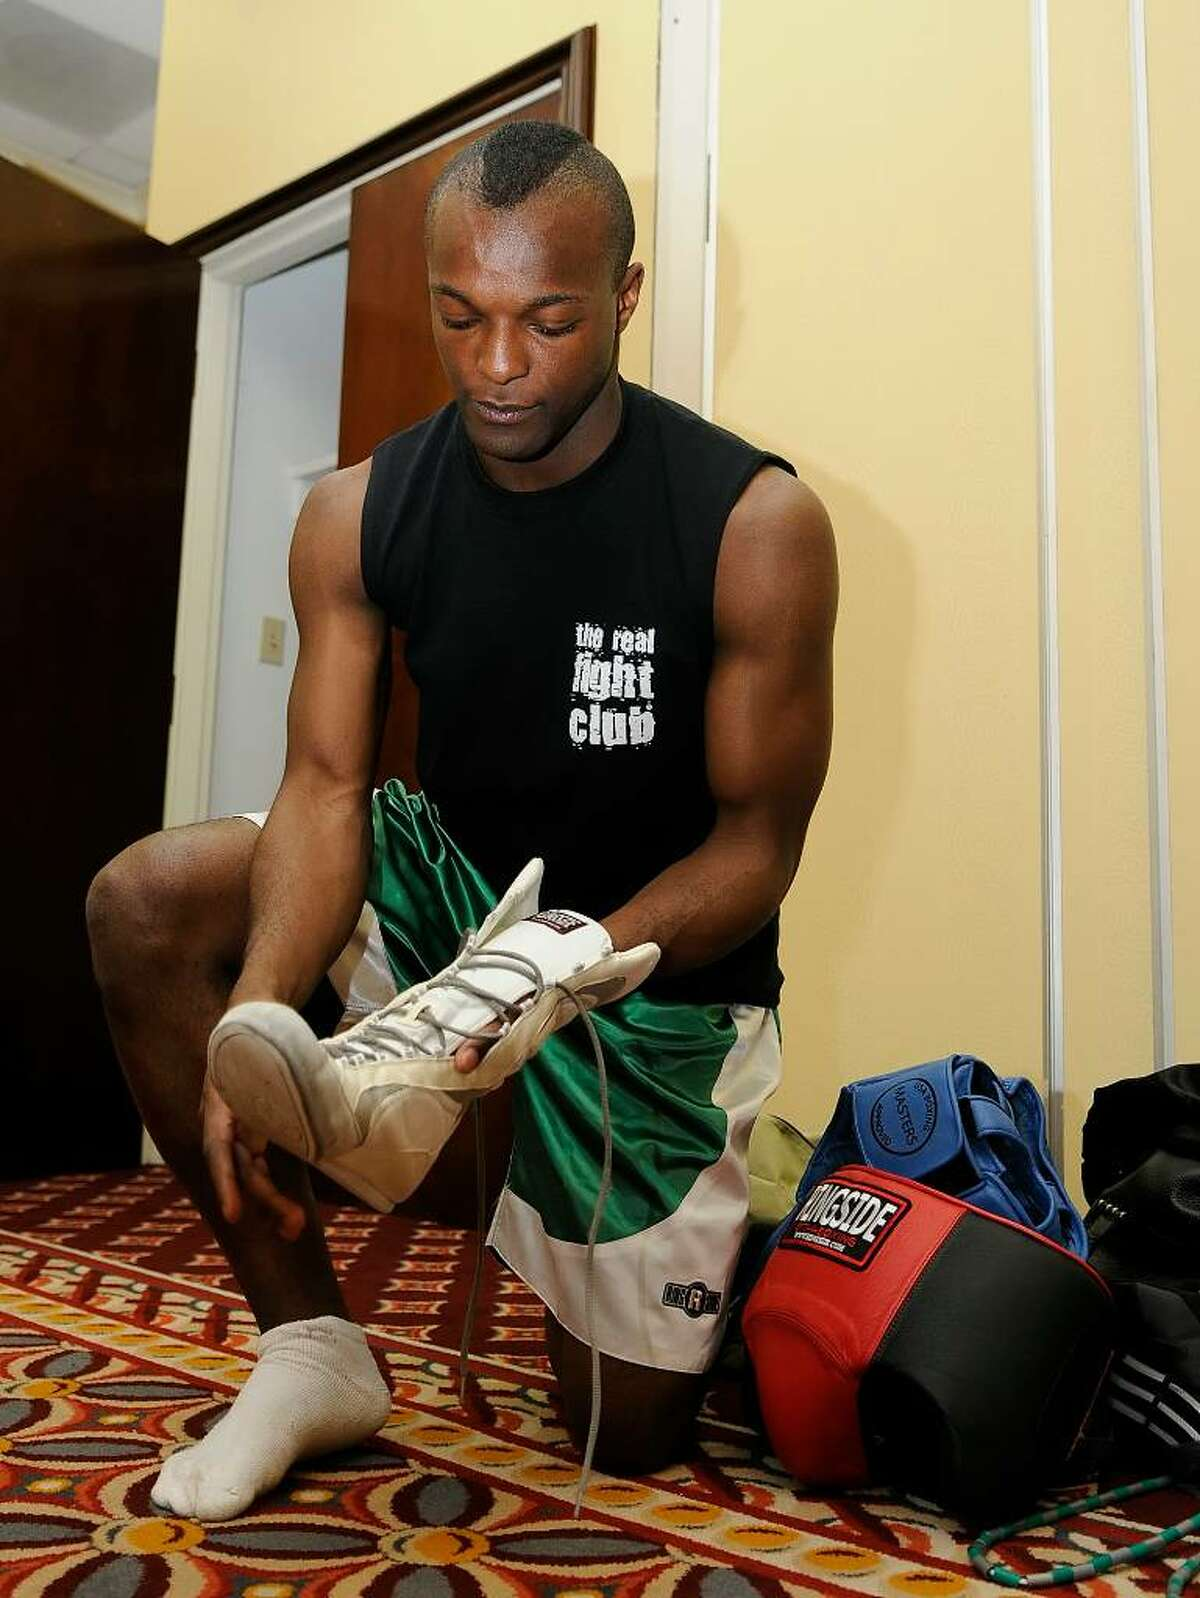 Sorba Brima, Stamford, gets ready for his amateur boxing match for later in the evening. By day Brima is an operations analyst for an electricity supplier, and has been training at Revolution Fitness since February. The amateur boxers are part of a charity event called the